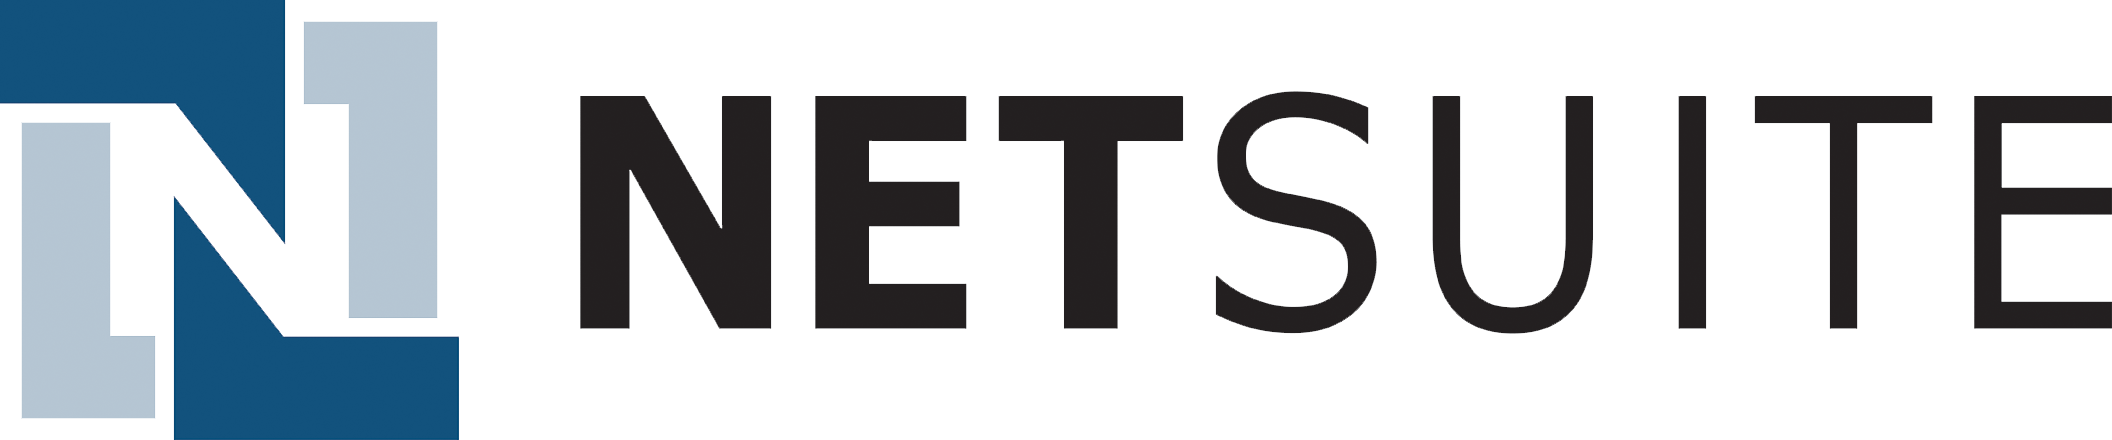 netsuite logo images reverse search